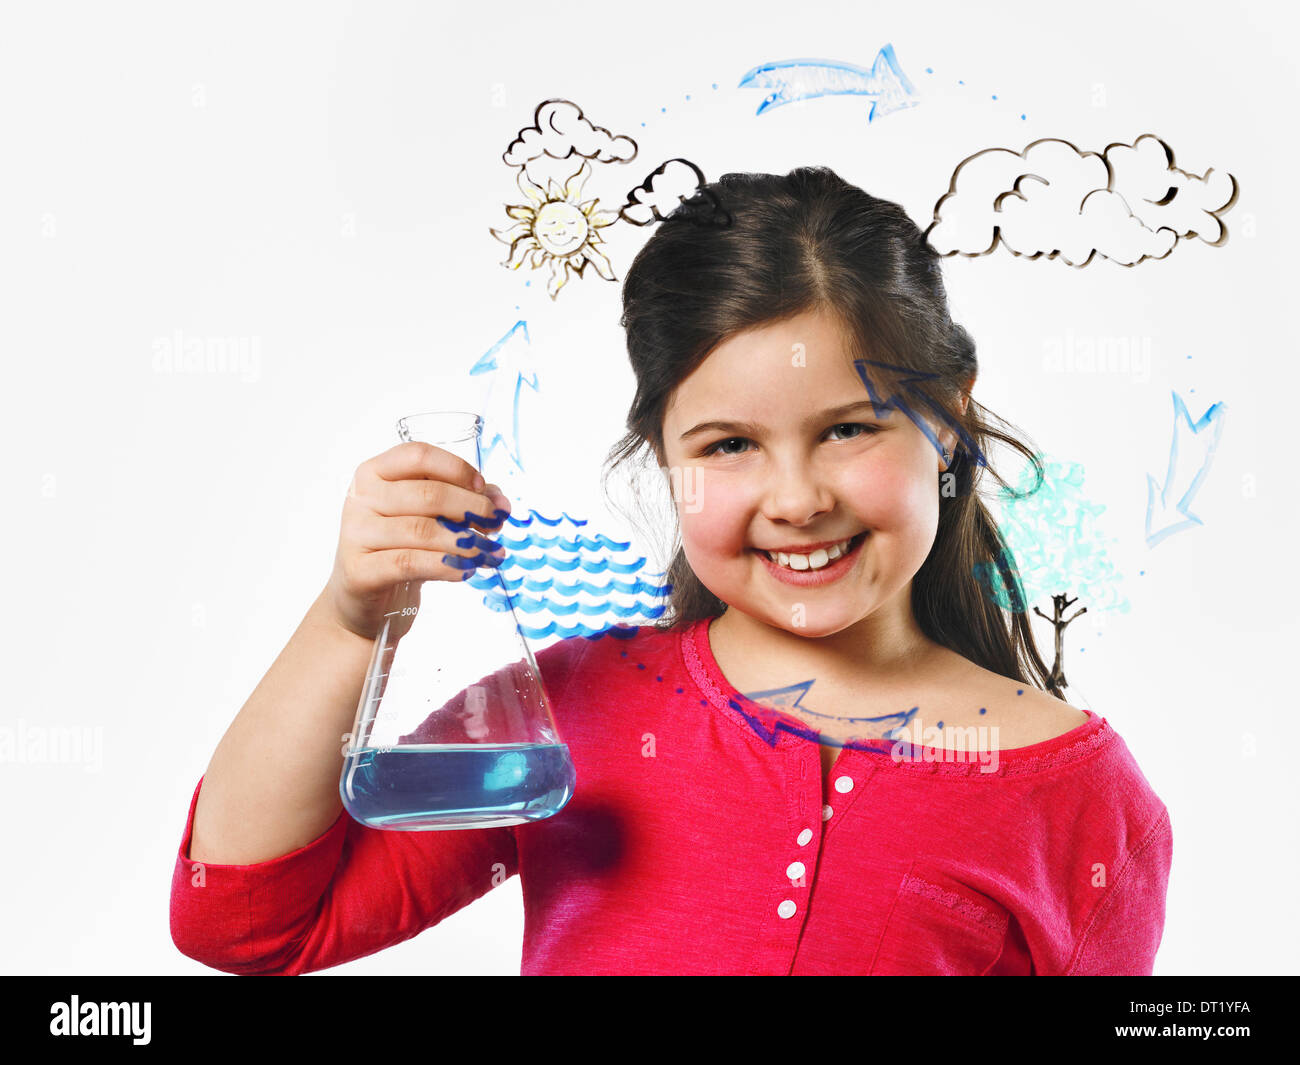 A young girl holding a conical flask of blue liquid in front of an evaporation cycle illustration drawn on a clear surface - Stock Image